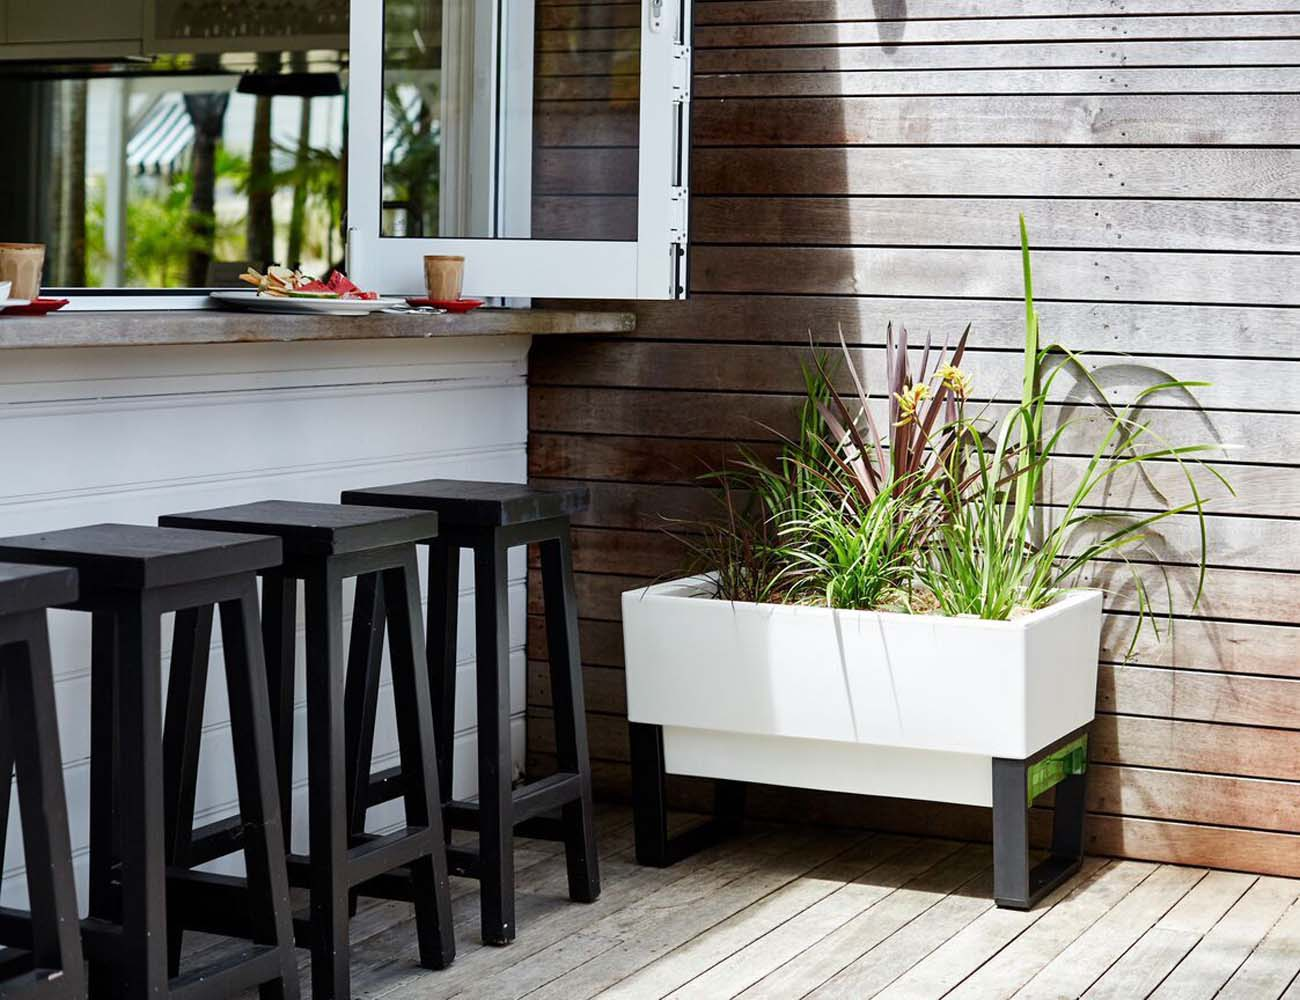 Self Watering Outdoor Planters Urban Garden Self Watering Planter Gadget Flow